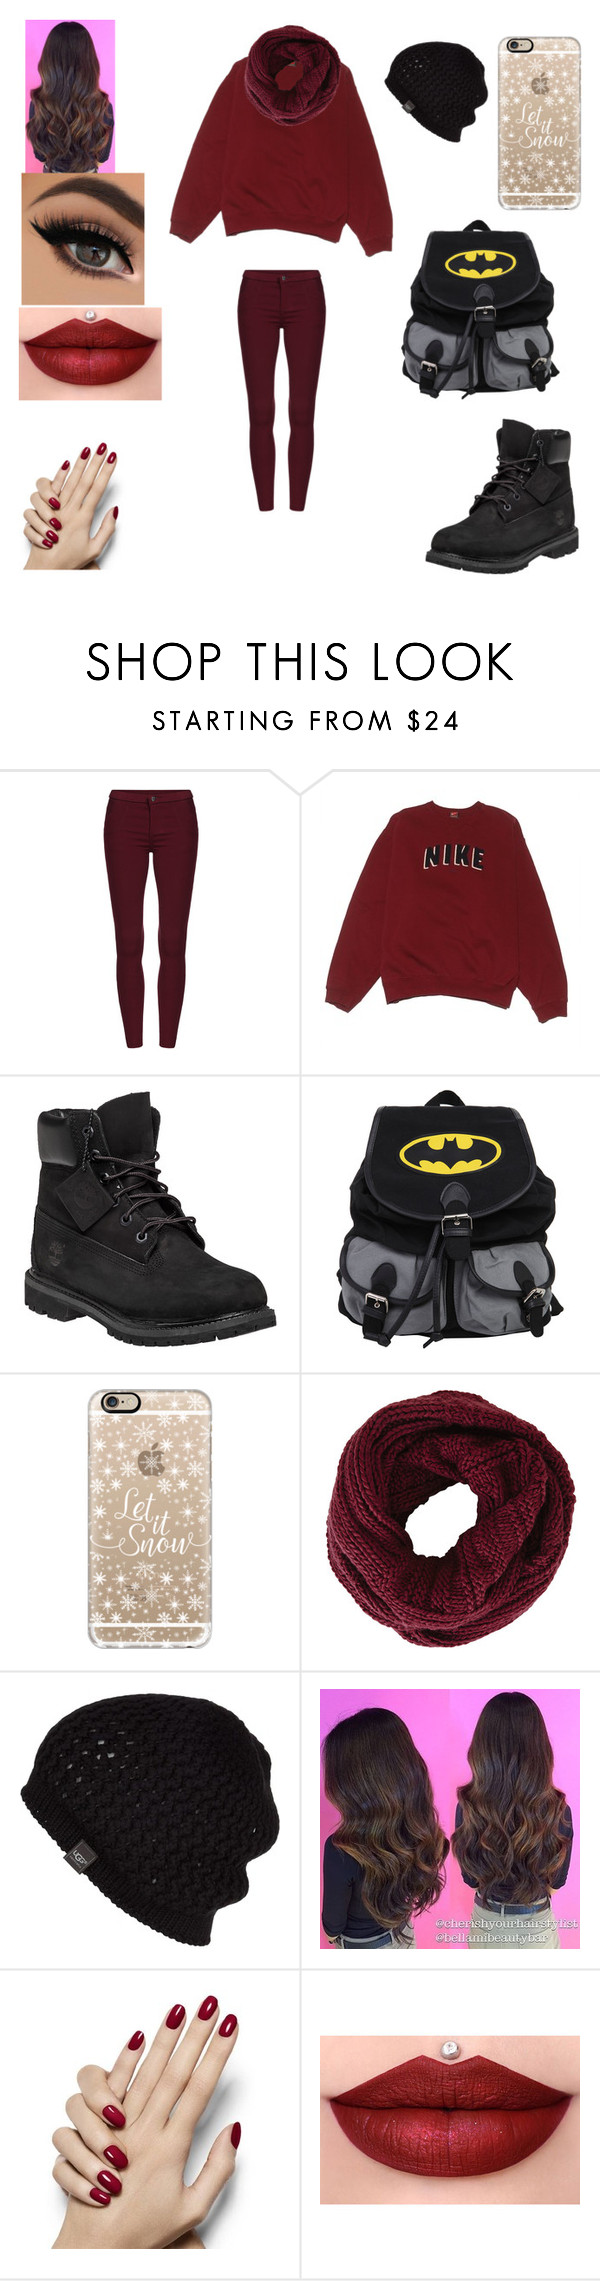 """""""Warm outfit"""" by marceline-vampirequeen ❤ liked on Polyvore featuring NIKE, Timberland, Casetify, BCBGMAXAZRIA, UGG Australia, women's clothing, women, female, woman and misses"""